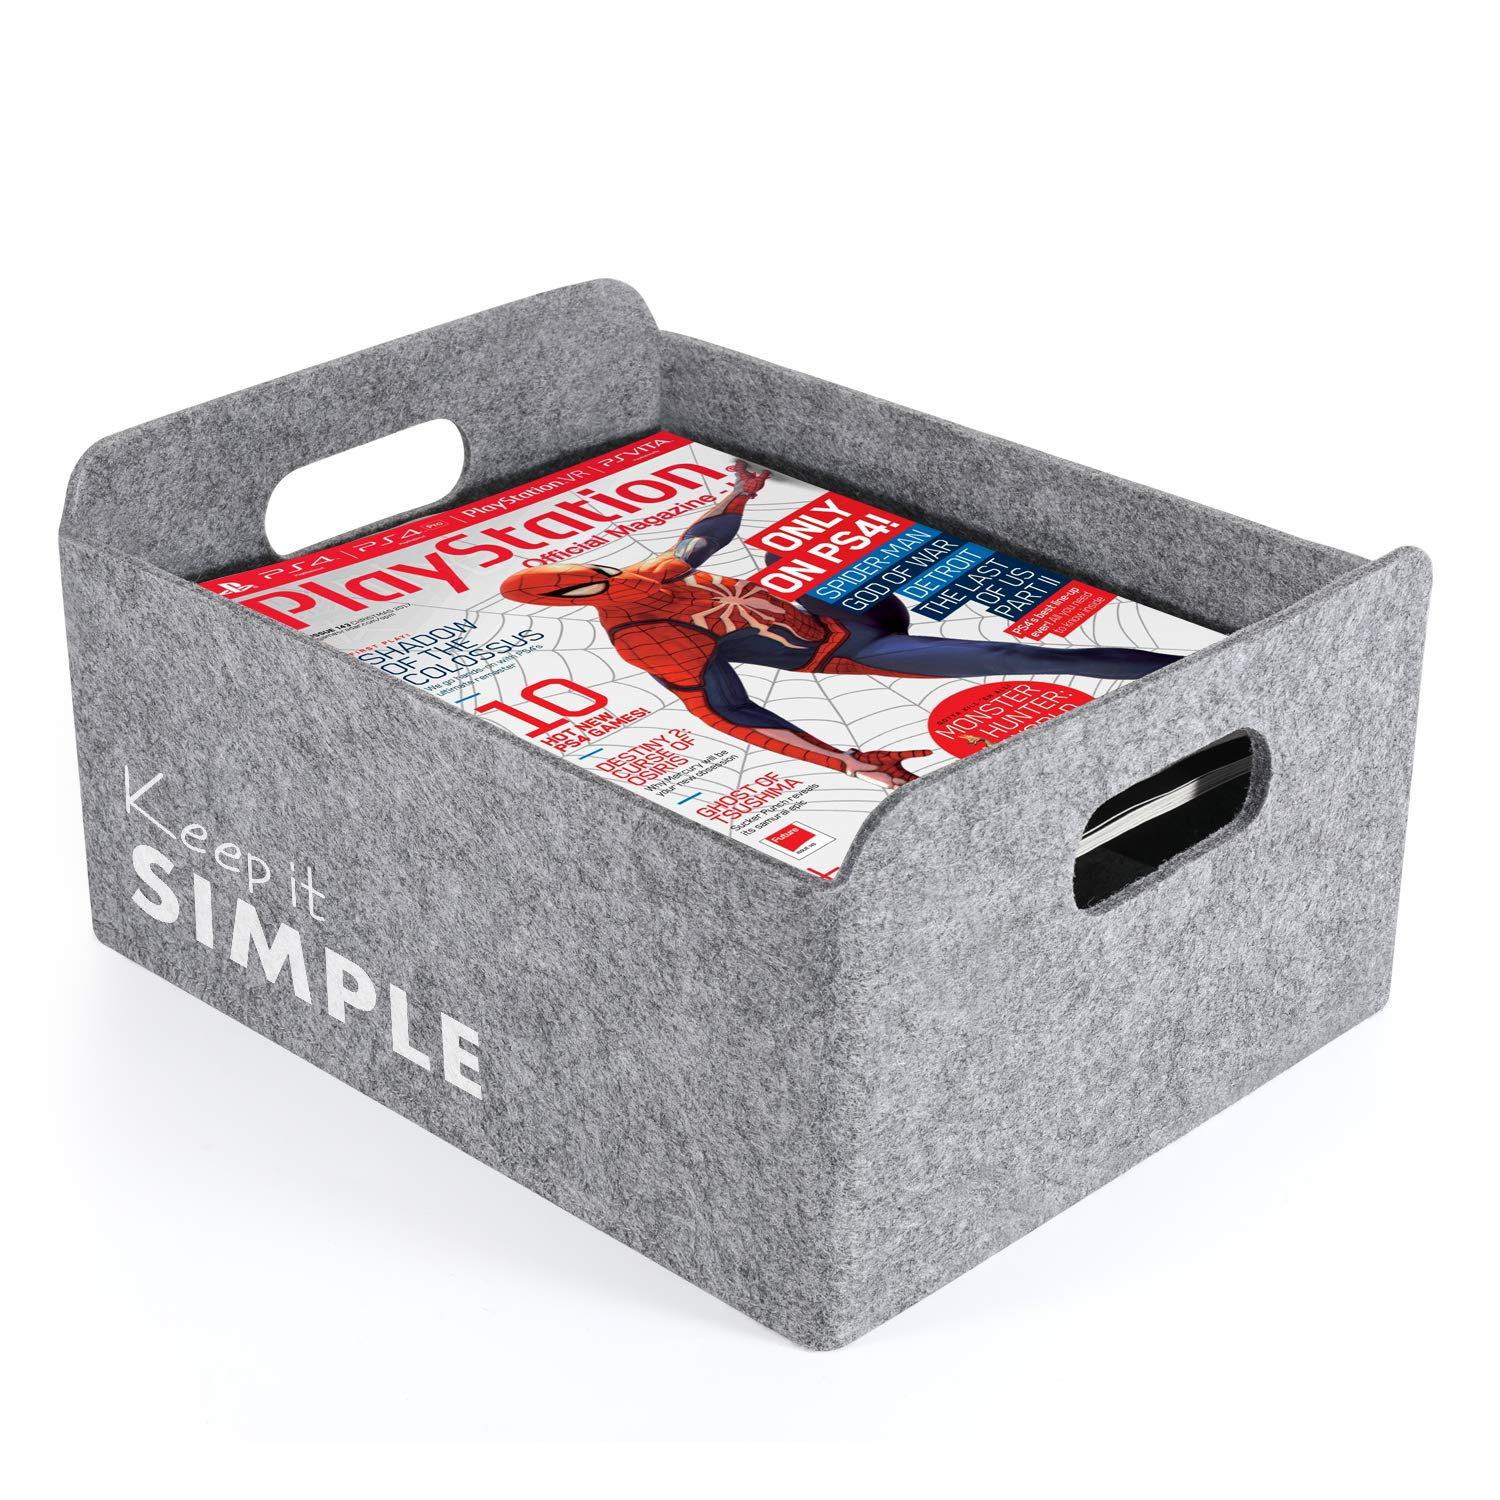 Welaxy Storage Baskets with Inspiring Quotes Felt Collapsible Storage Baskets Foldable Storage Cube Shelf Boxes Drawers Organizer bin for Kids Toys Books Clothes Motivational Gifts(Gray Simple)